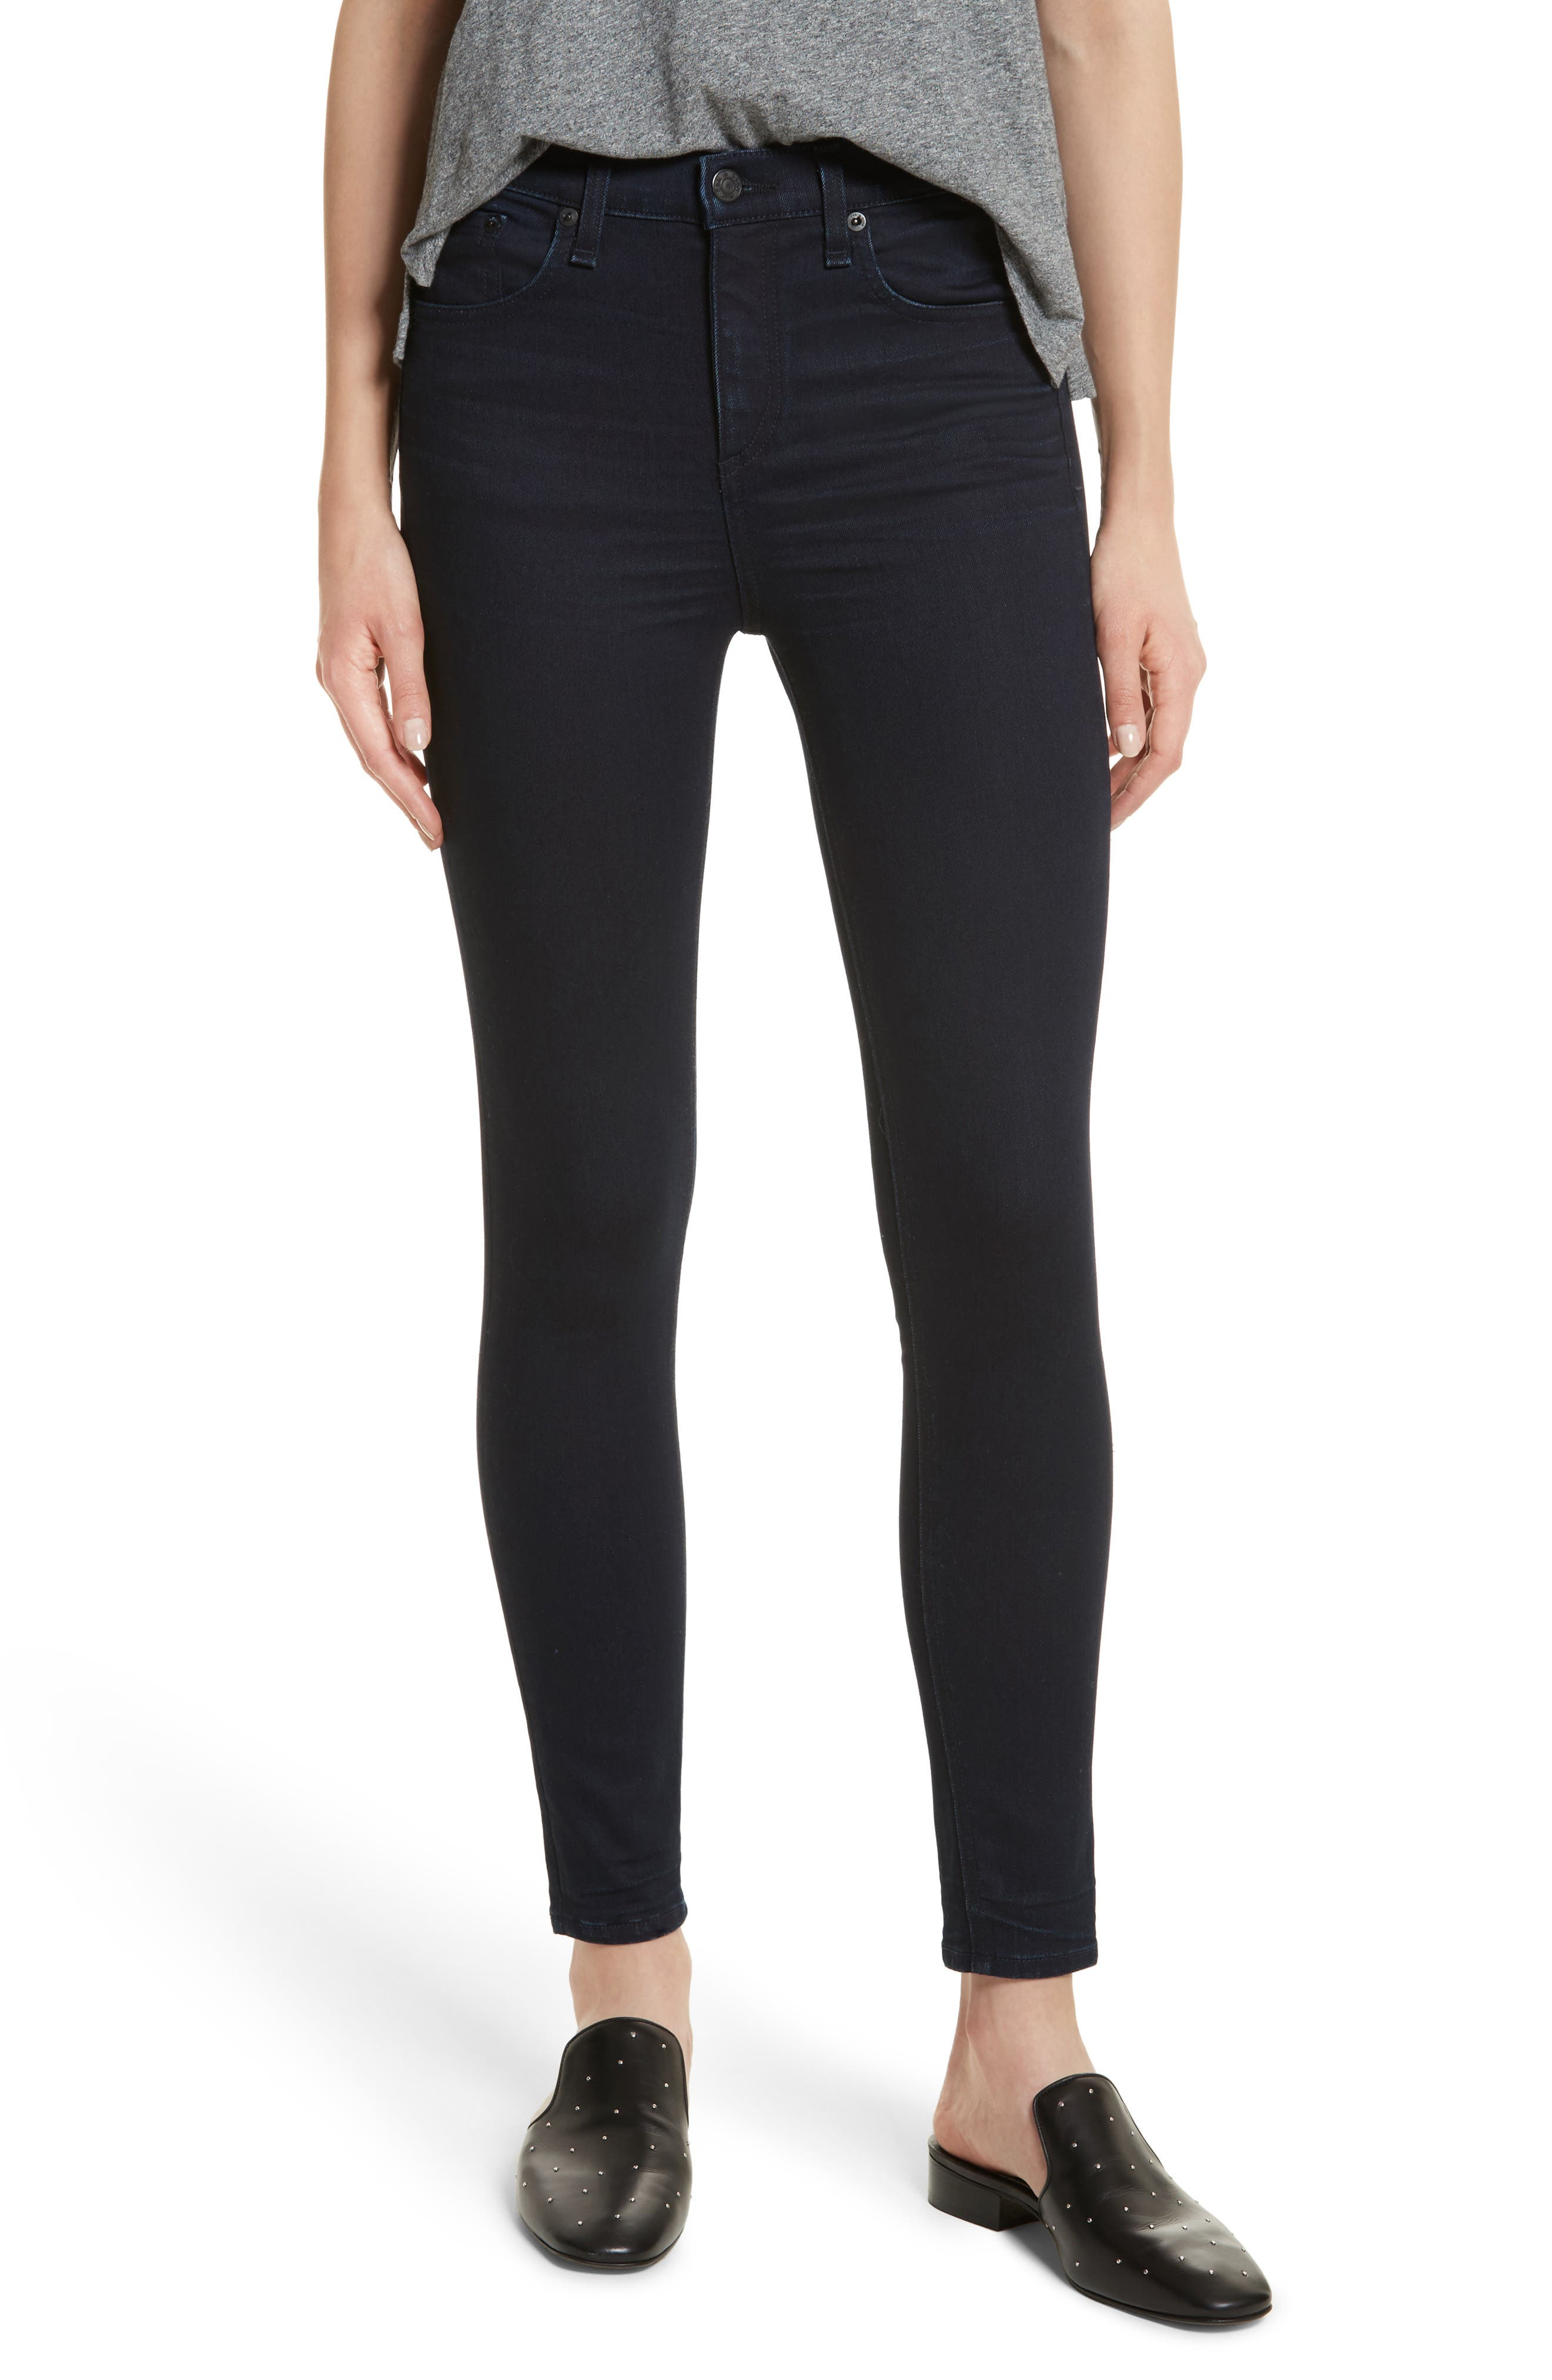 Main Image - rag & bone/JEAN High Waist Ankle Skinny Jeans (Twilight)